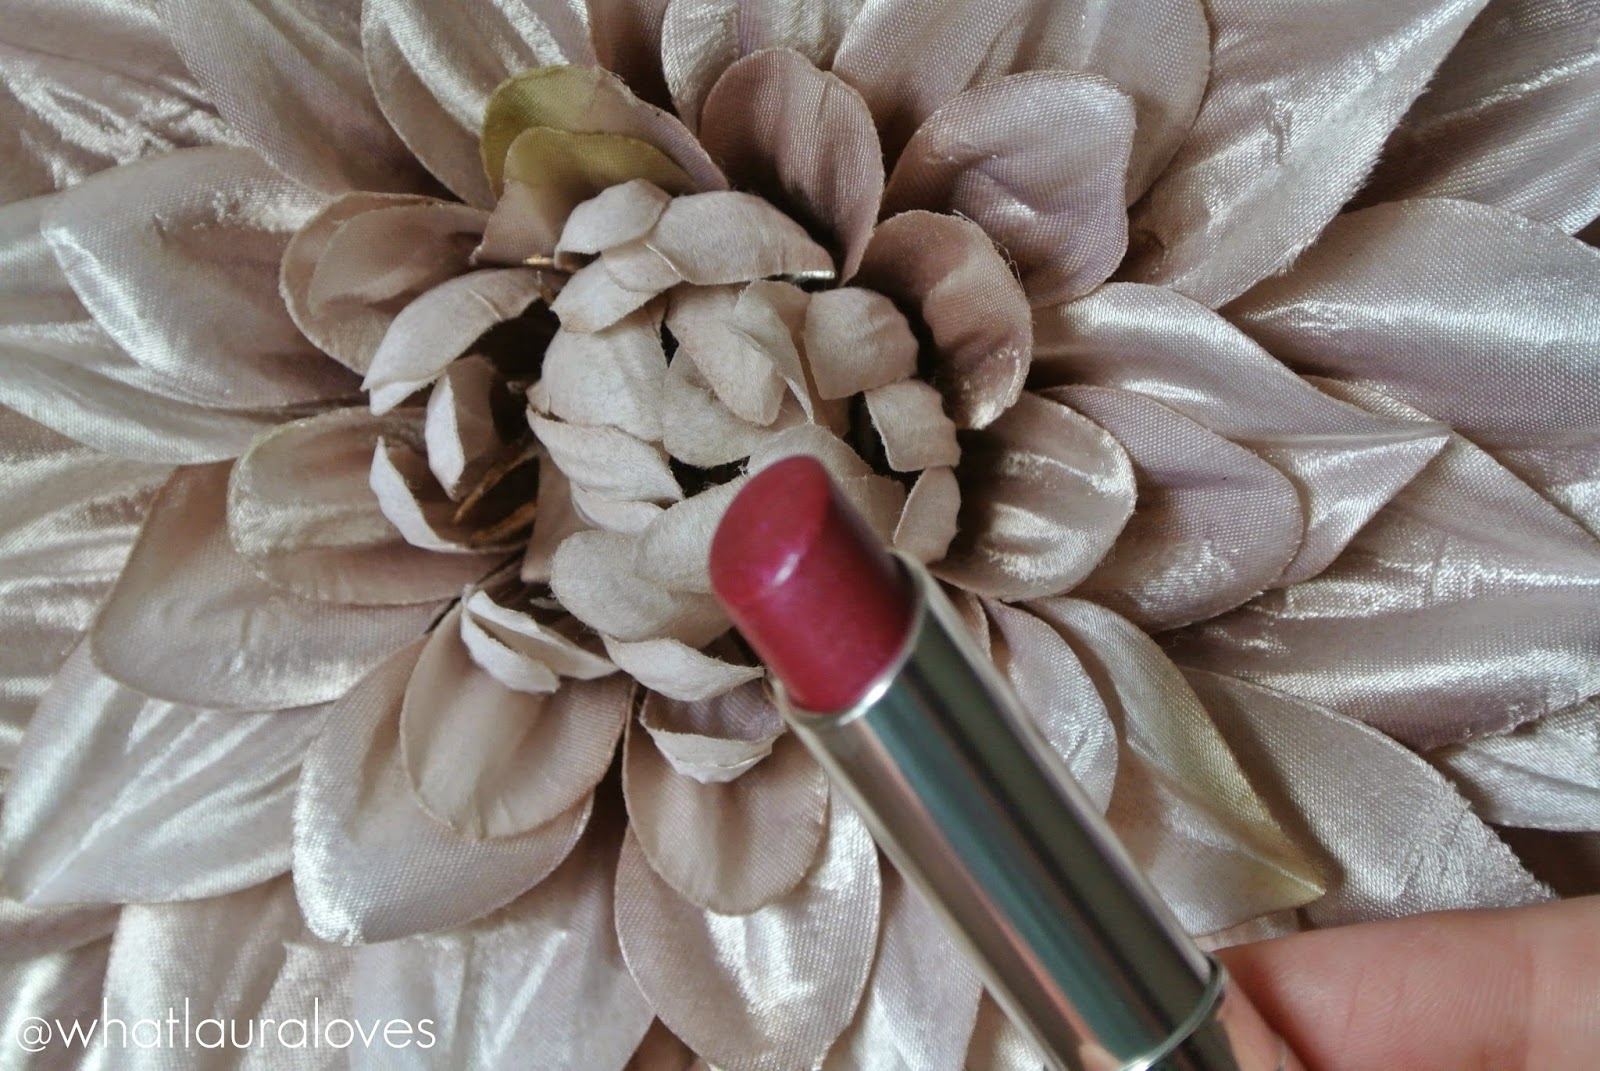 Dior Addict Lipstick in 983 Insoumise Review and Swatches